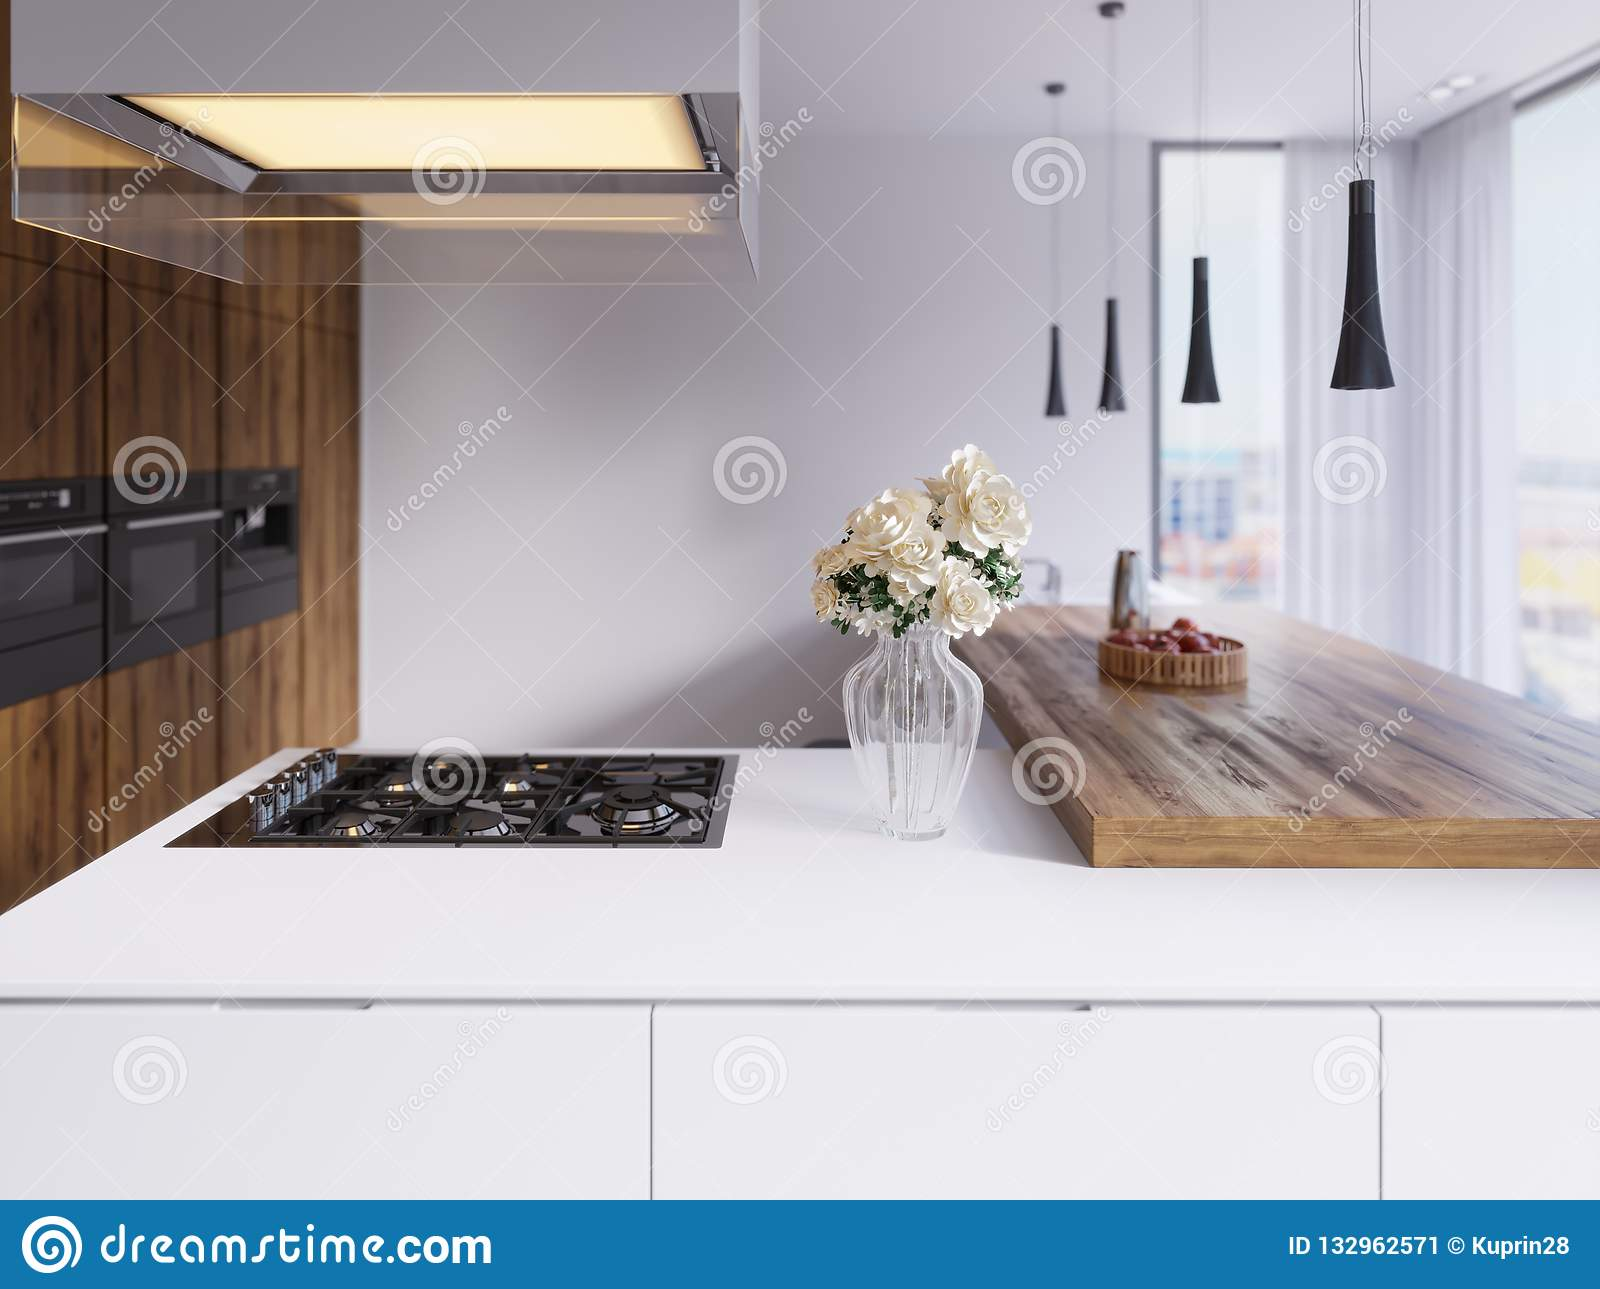 Technological Modern Kitchen In A Minimalist Style With A New Generation Of Appliances Hob Illuminated Glass Hood Ceiling Stock Illustration Illustration Of Glass Countertops 132962571